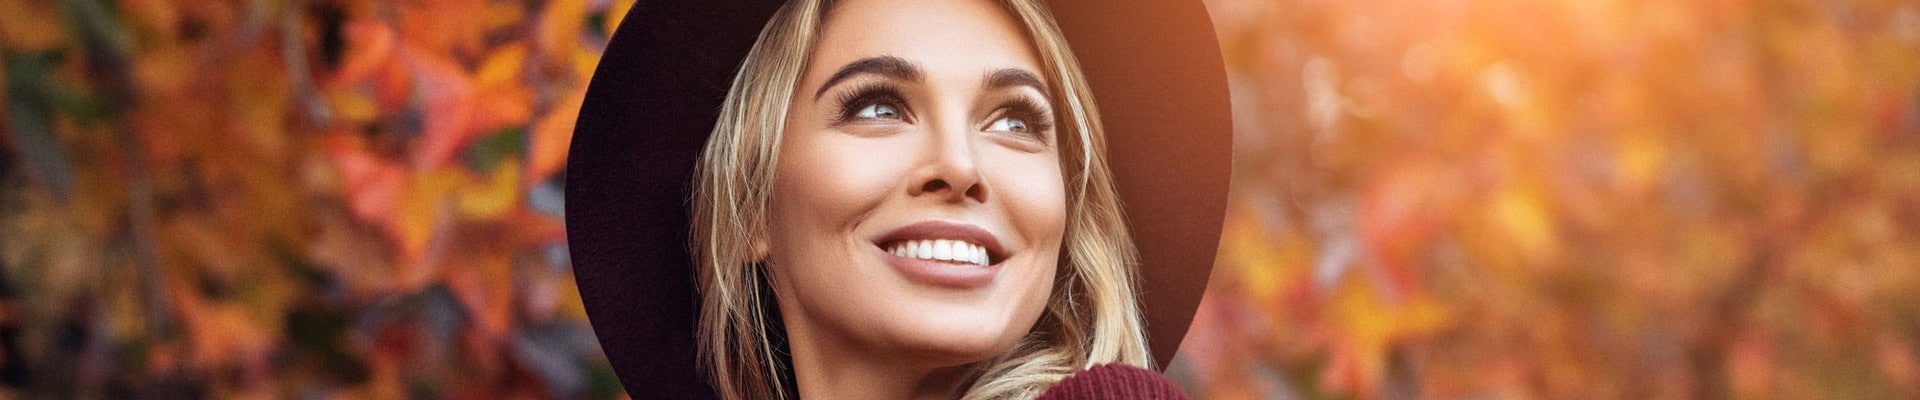 Invisalign for Adults Brace Connection in Downey, CA